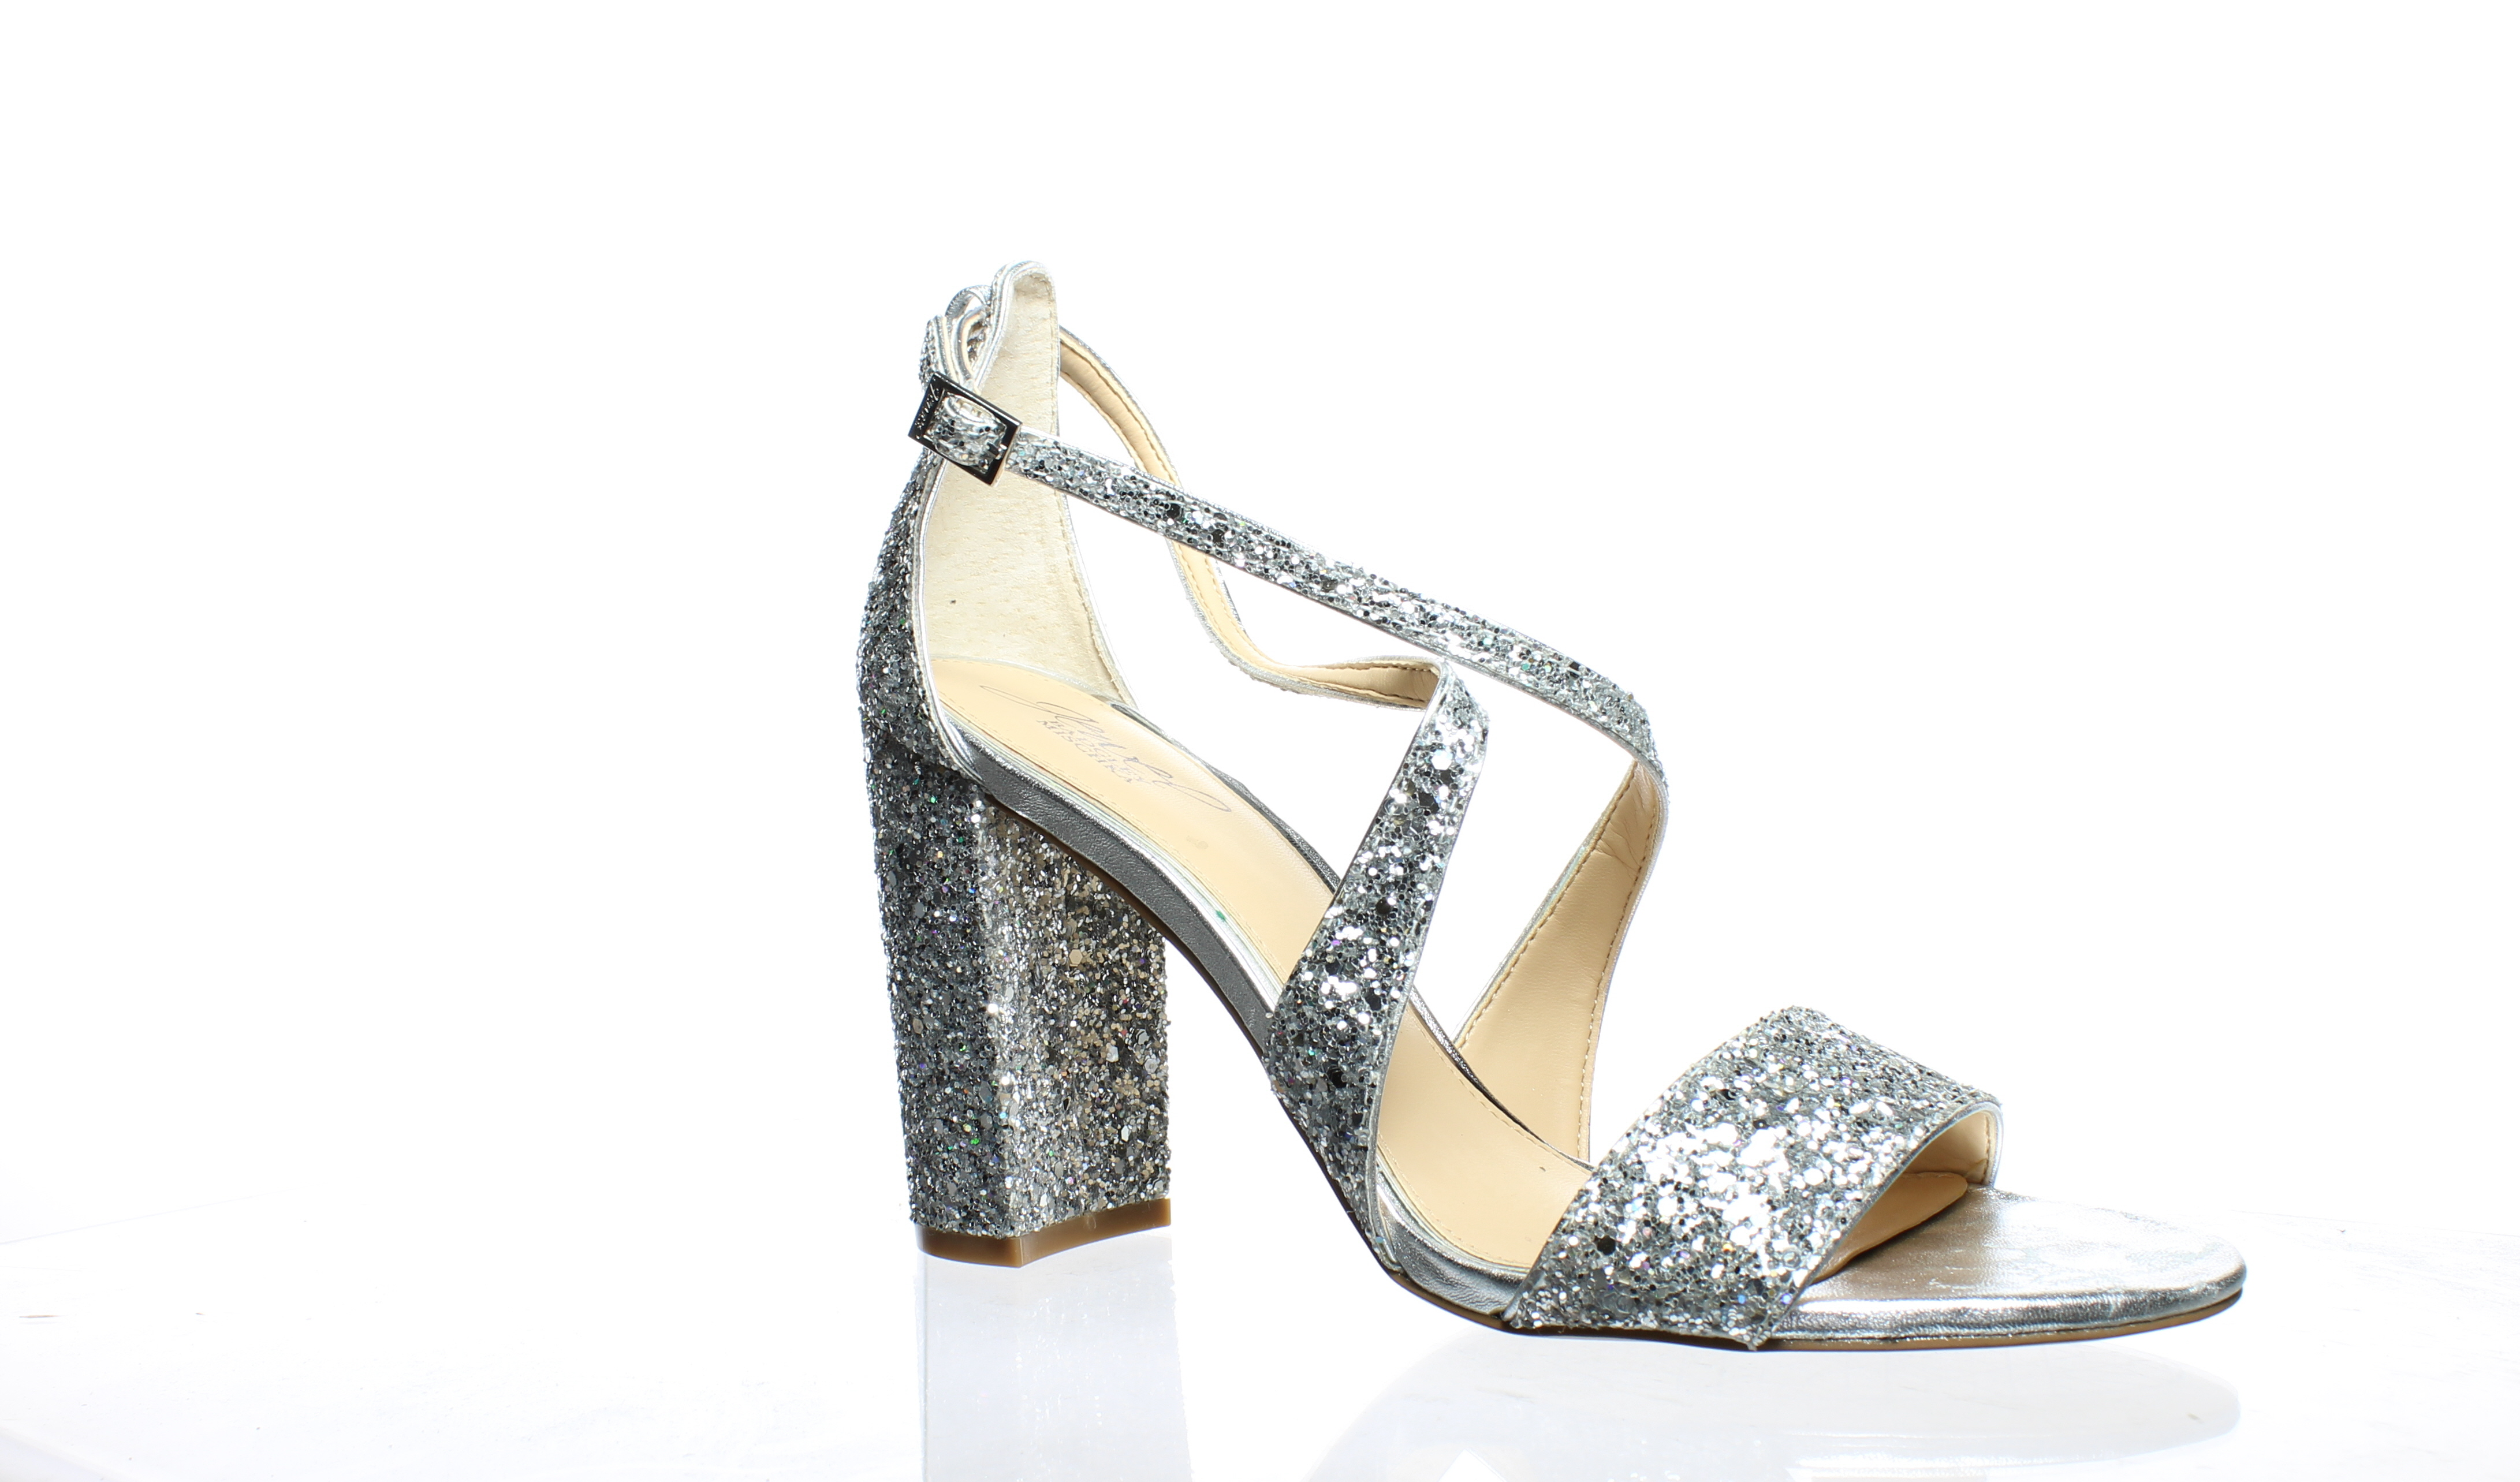 a936425b9f Badgley Mischka Womens Cook Silver Ankle Strap Heels Size 9 (207803 ...